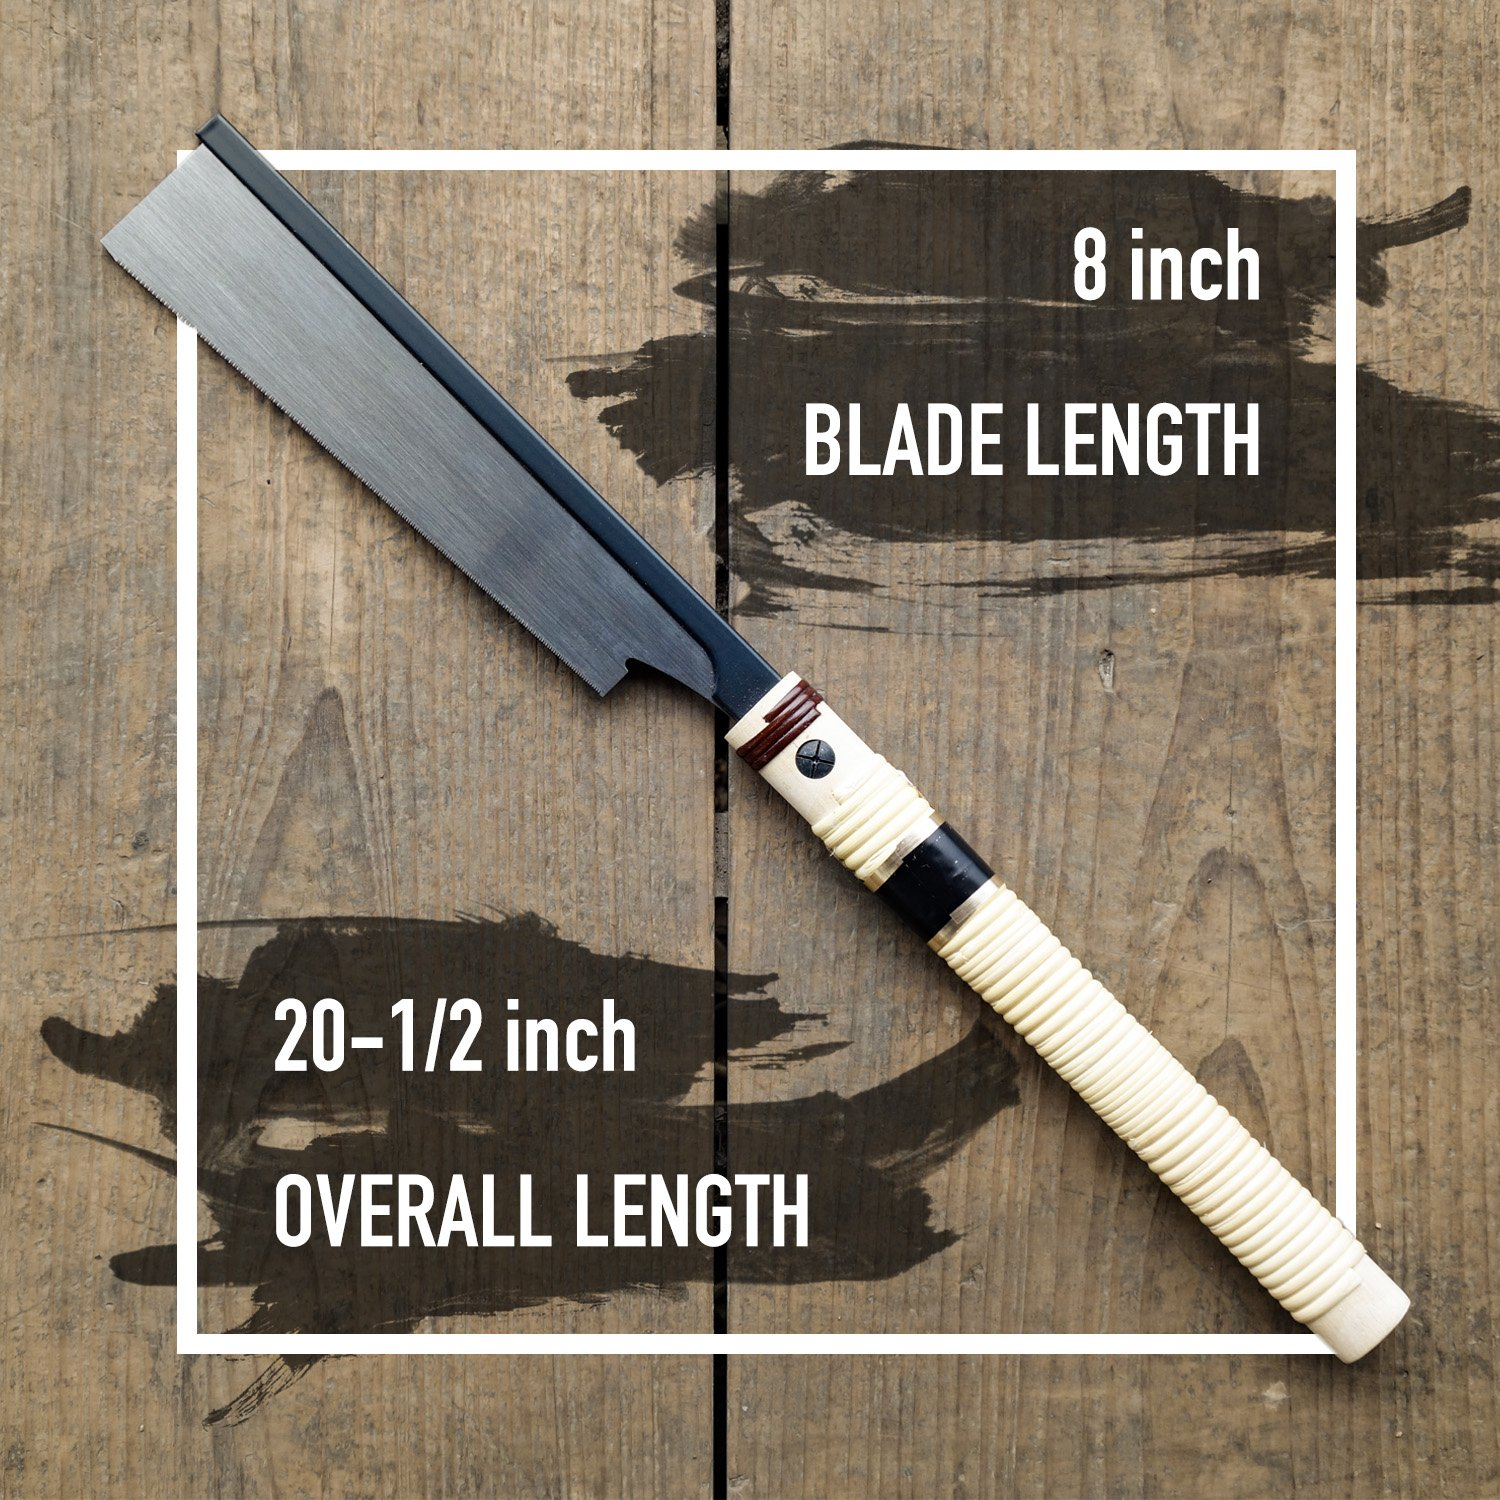 SUIZAN Japanese Hand Saw 8 Inch Ultra Fine Cut Dozuki Dovetail 0.2mm Blade Pull Saw for Woodworking by SUIZAN (Image #2)